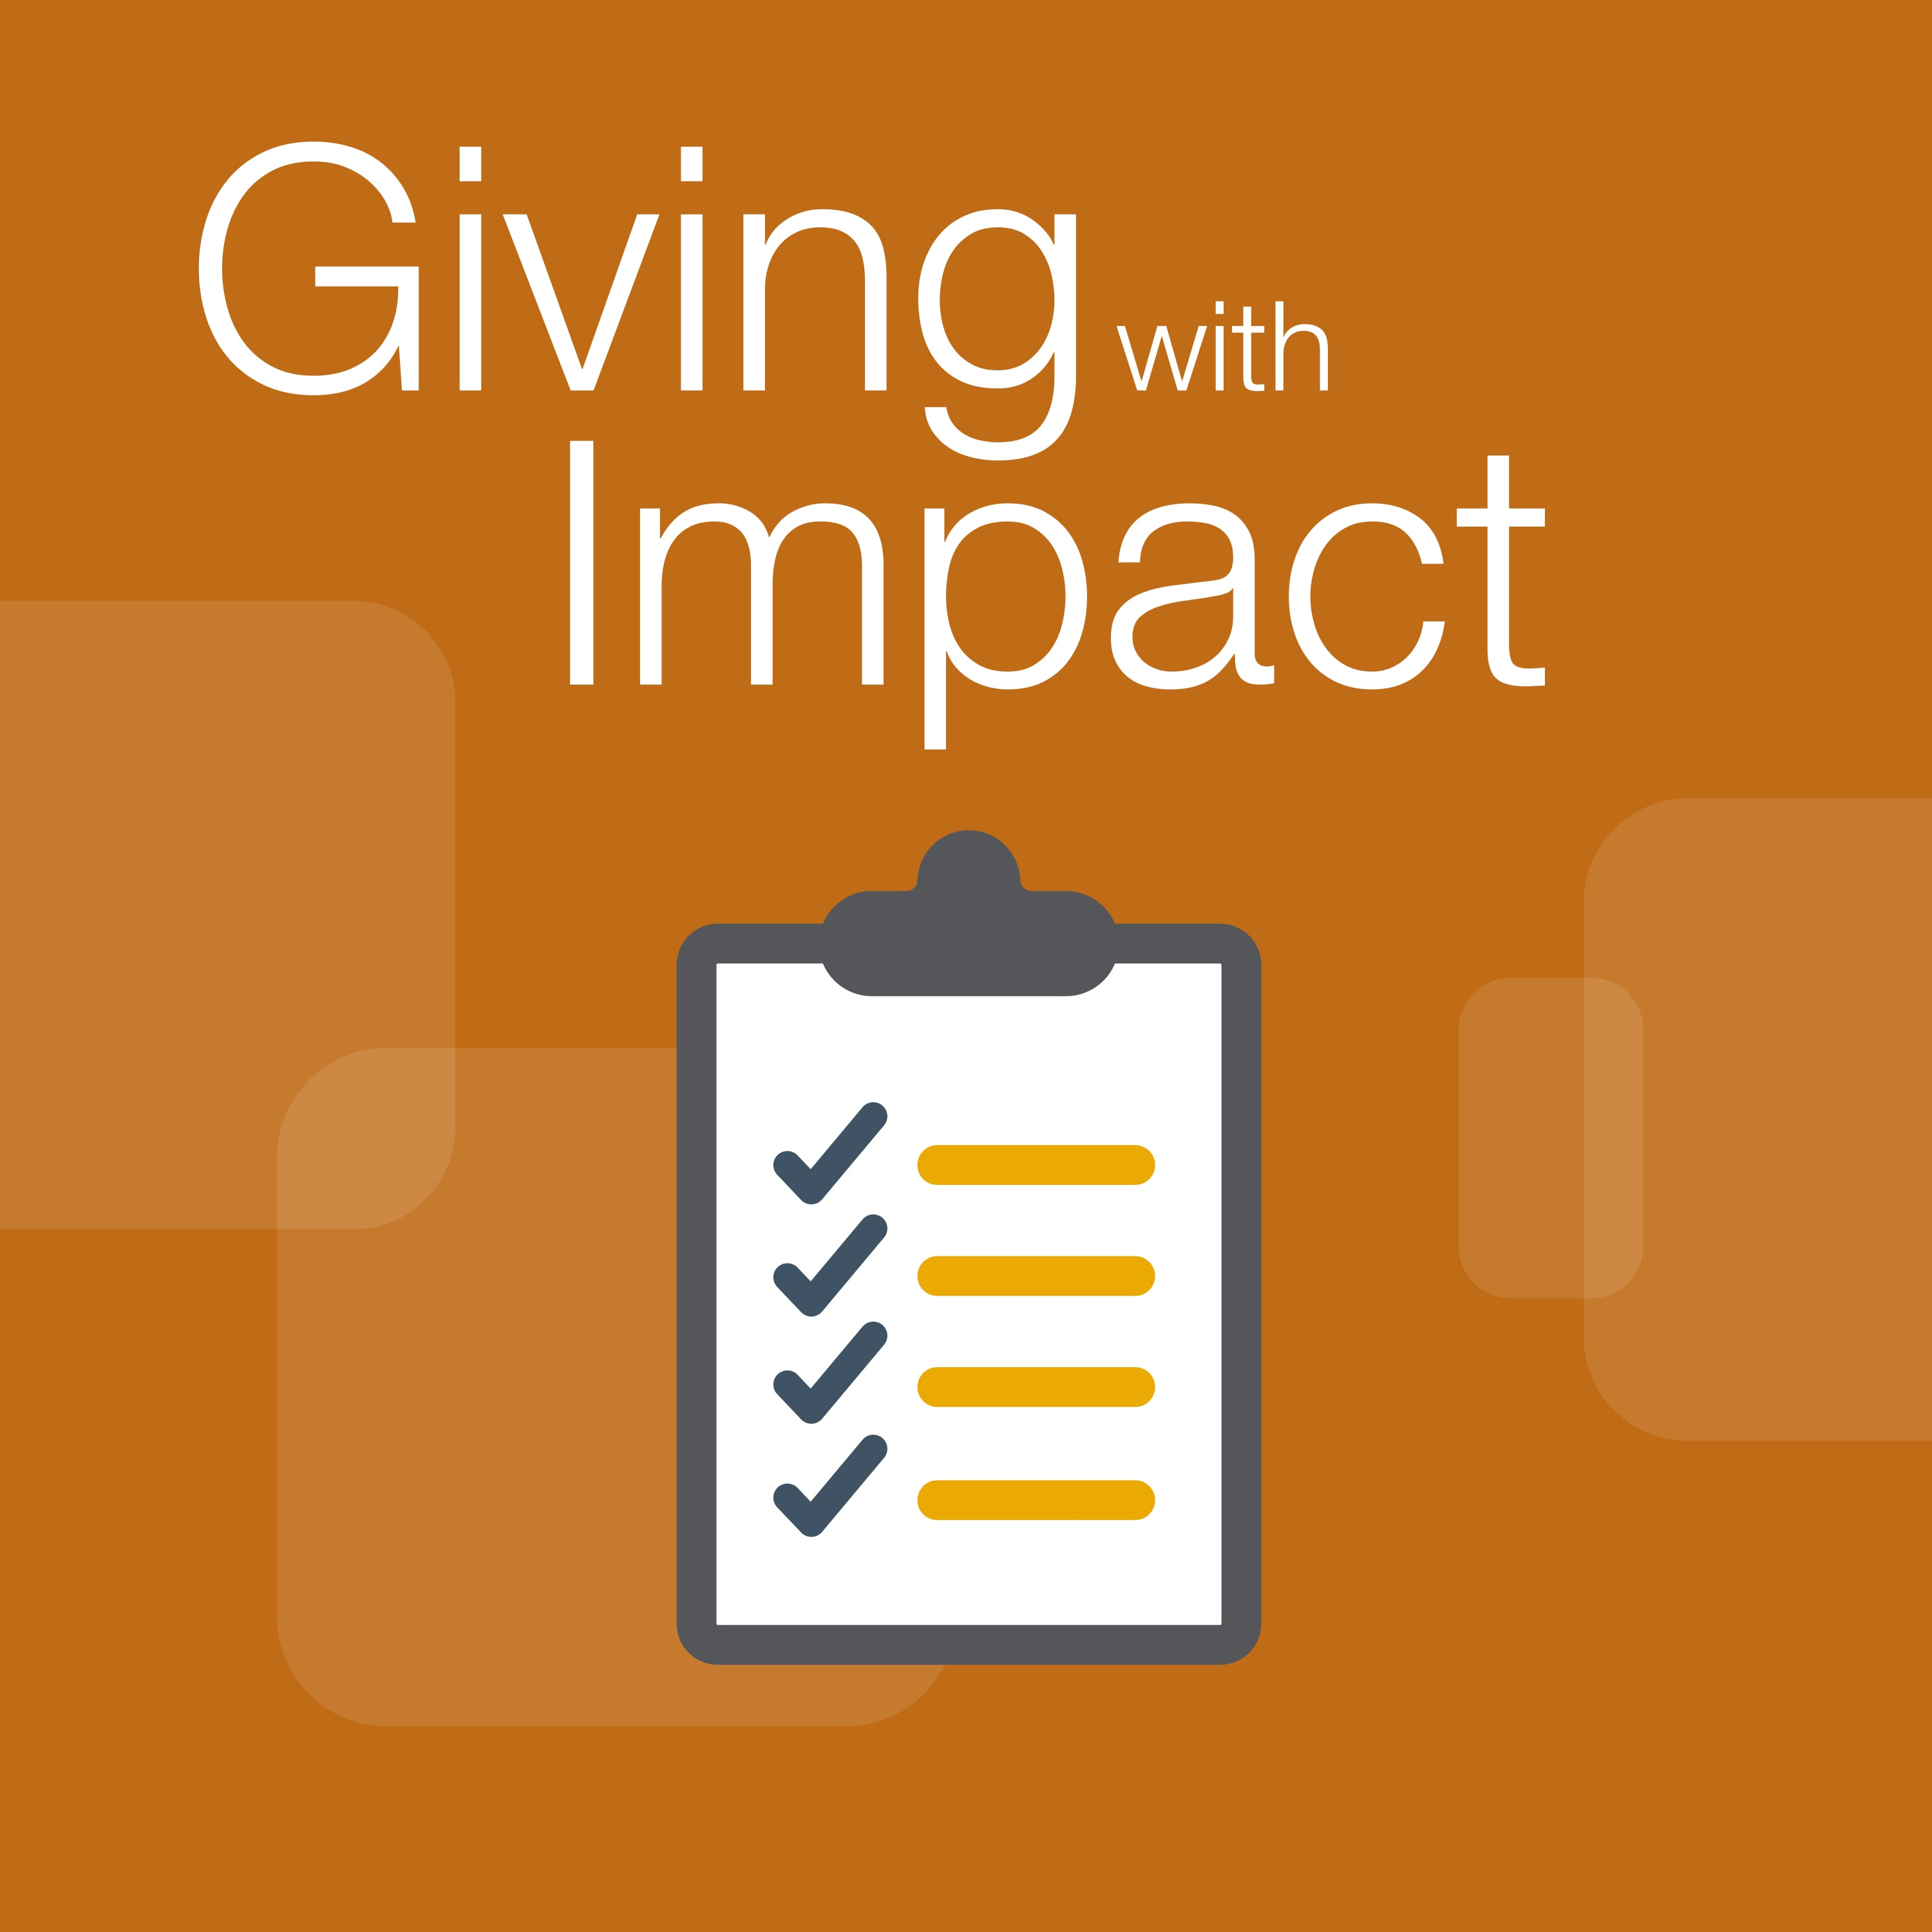 giving with impact icon